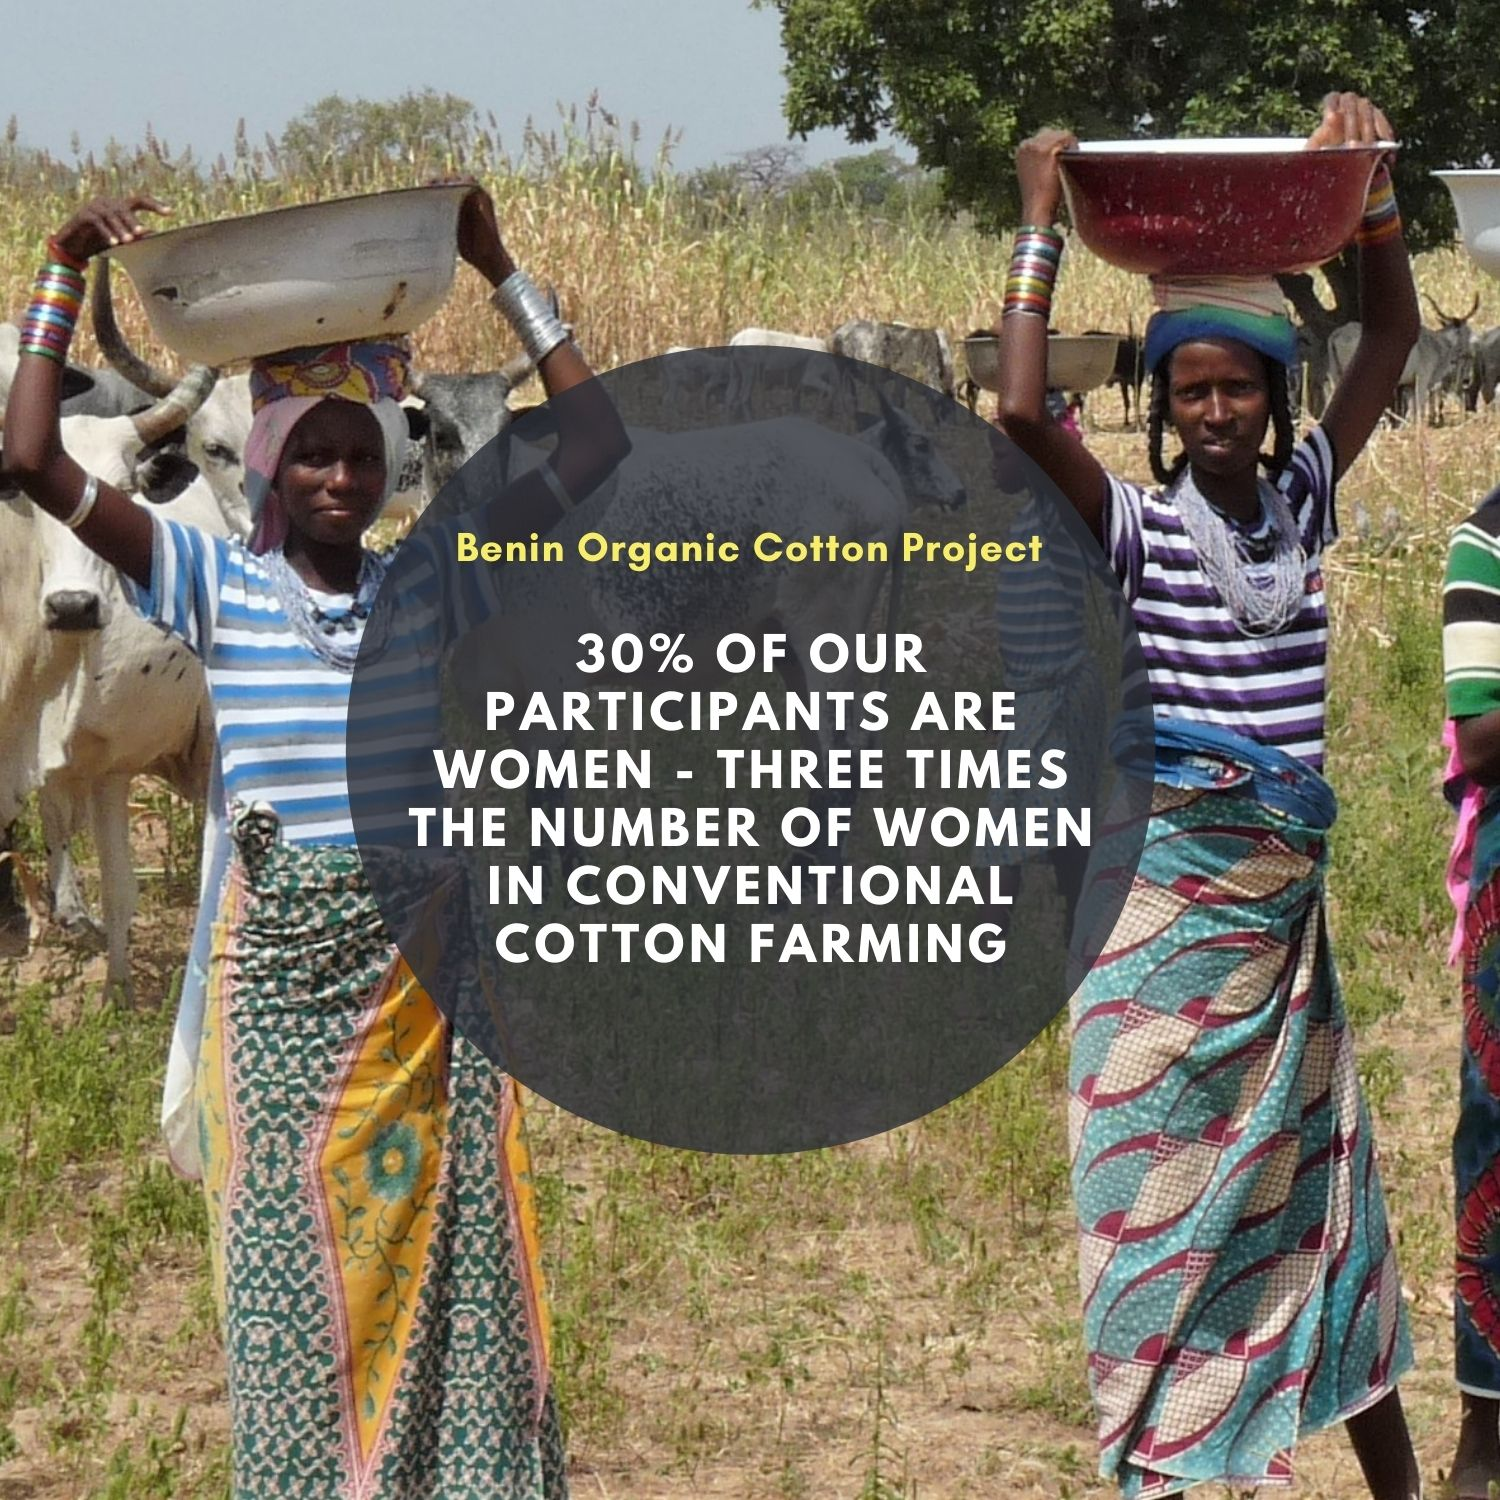 30% of the farmers on our cotton projects in Benin are women